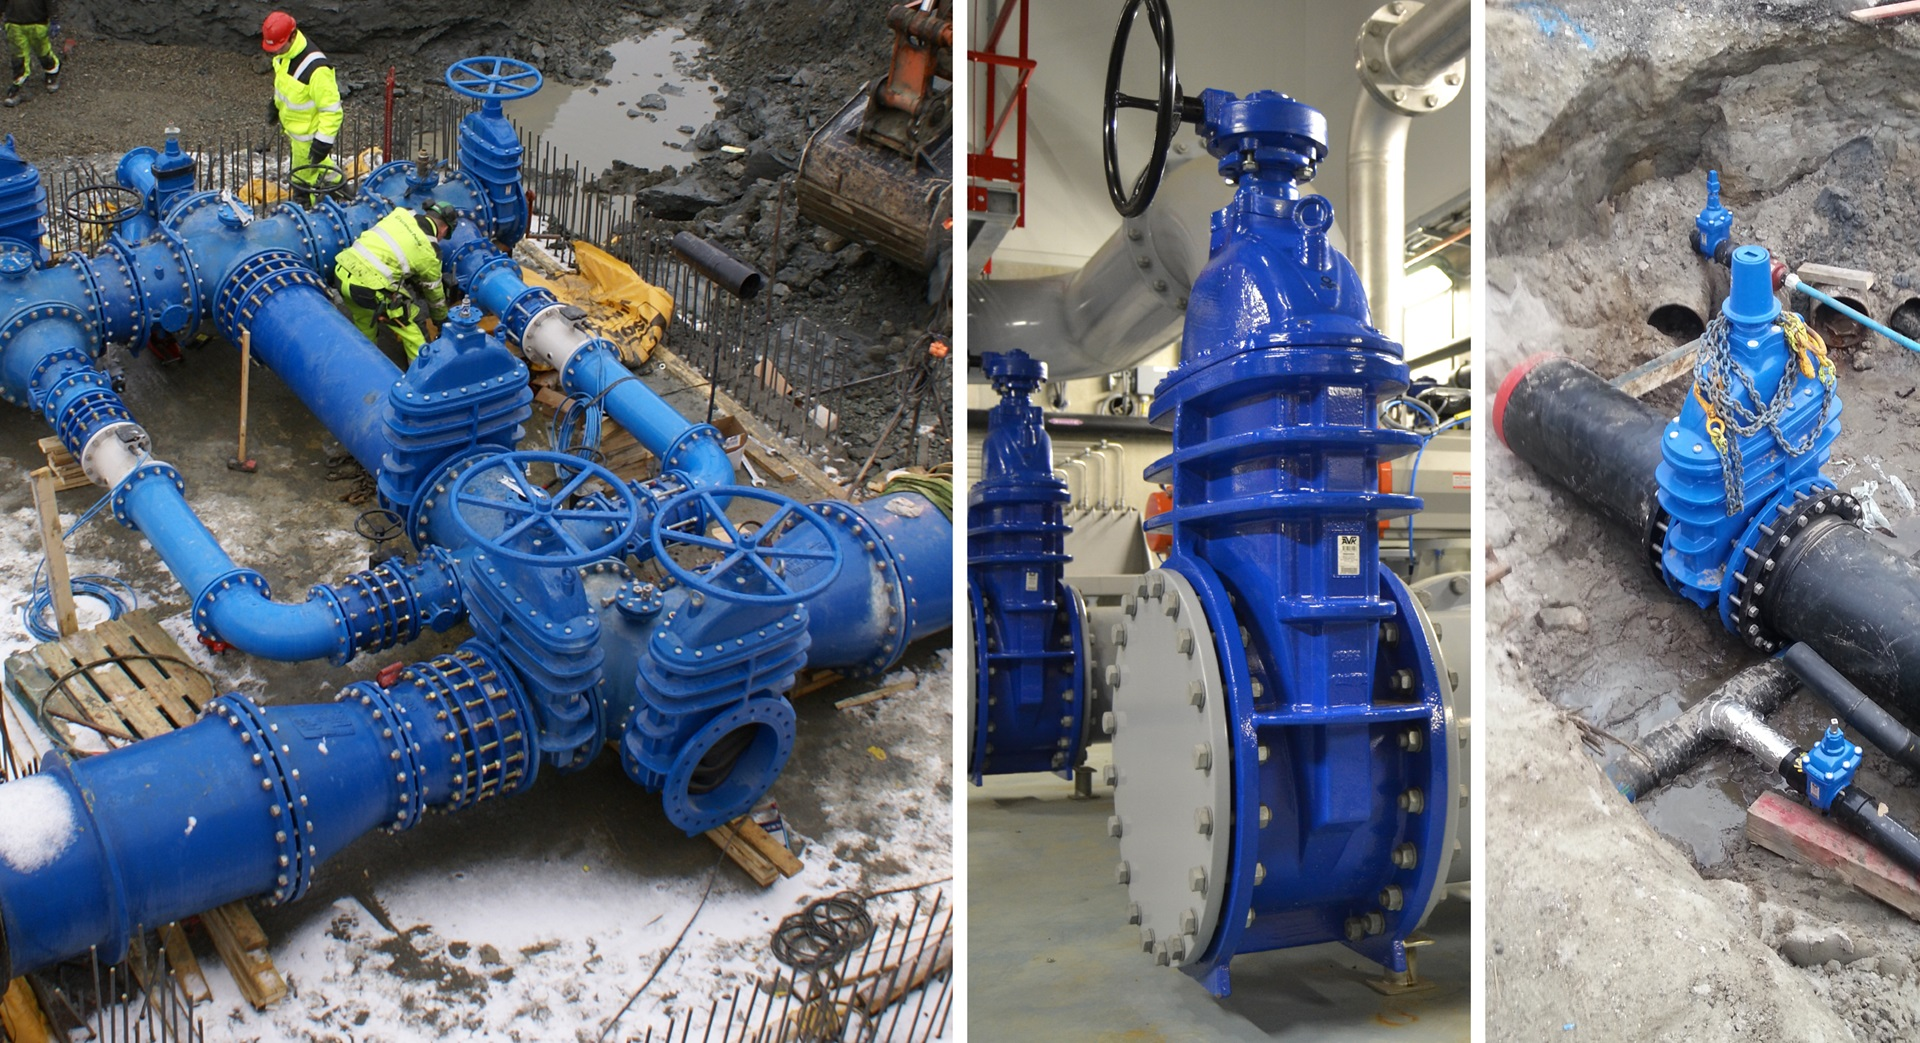 Installation images of gate valves